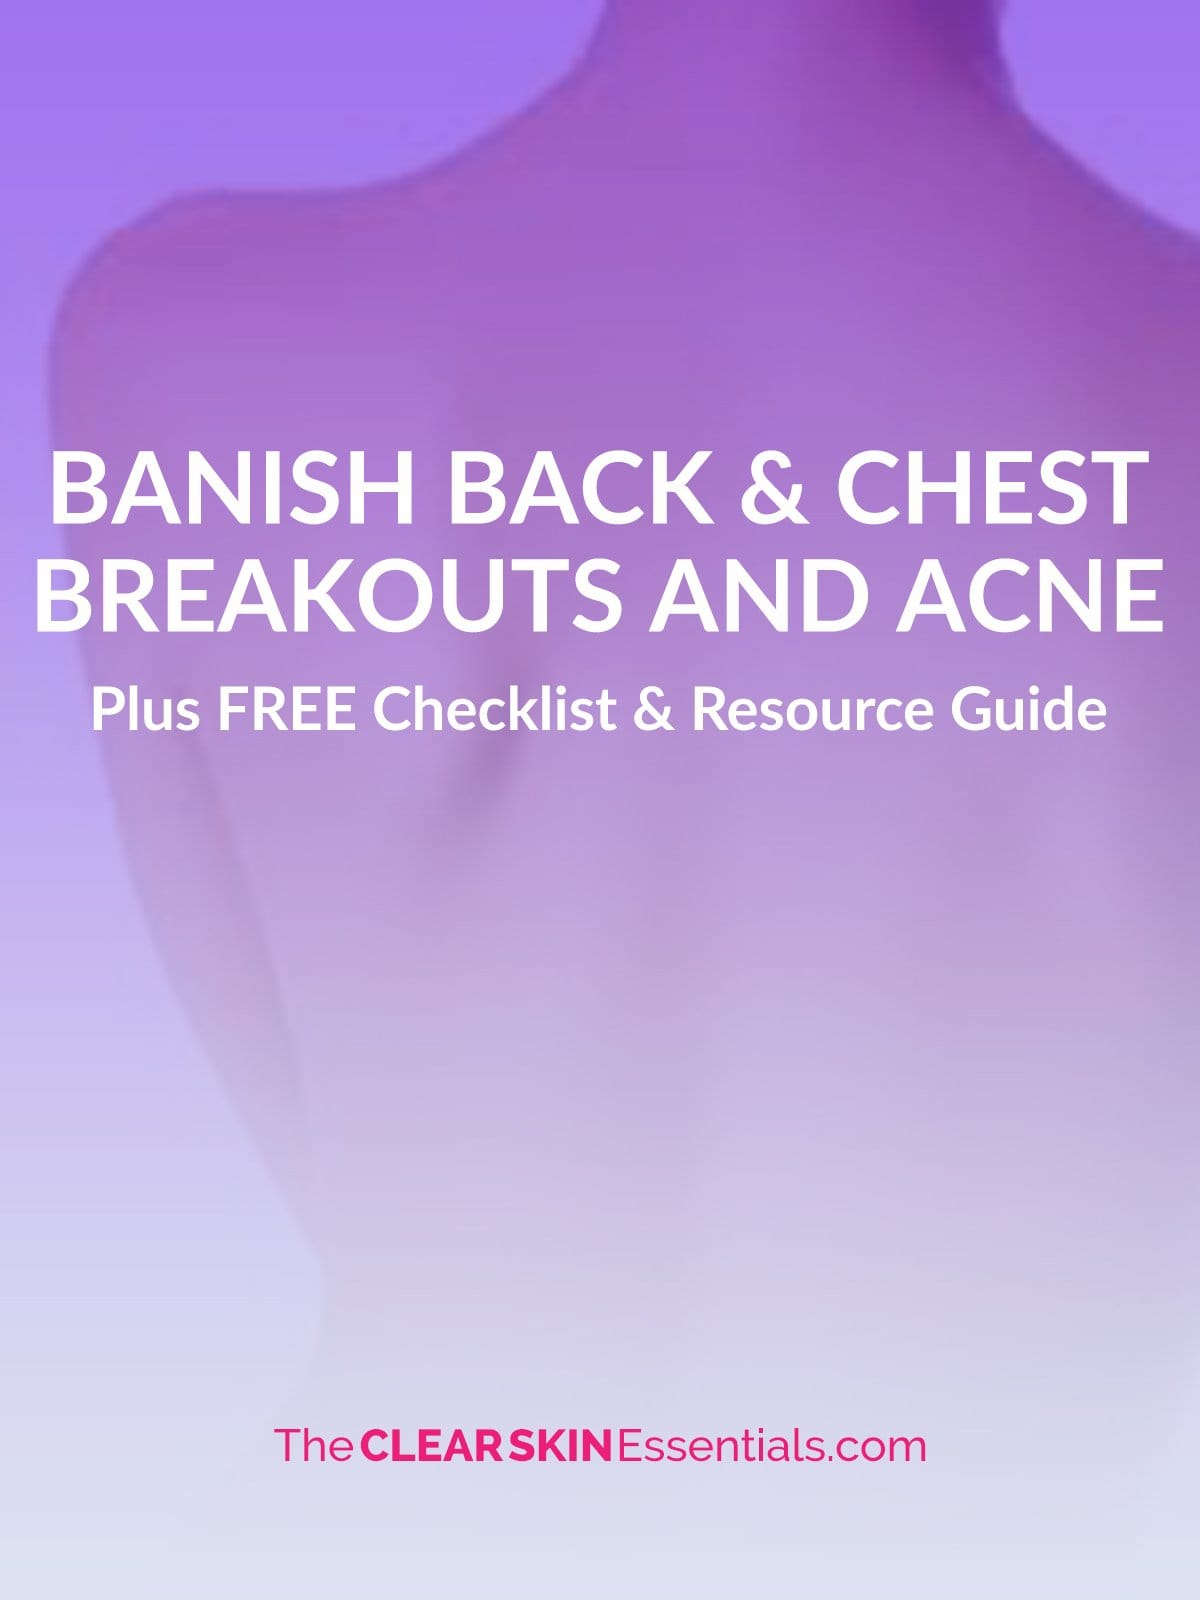 Tips for getting rid of back and chest acne.